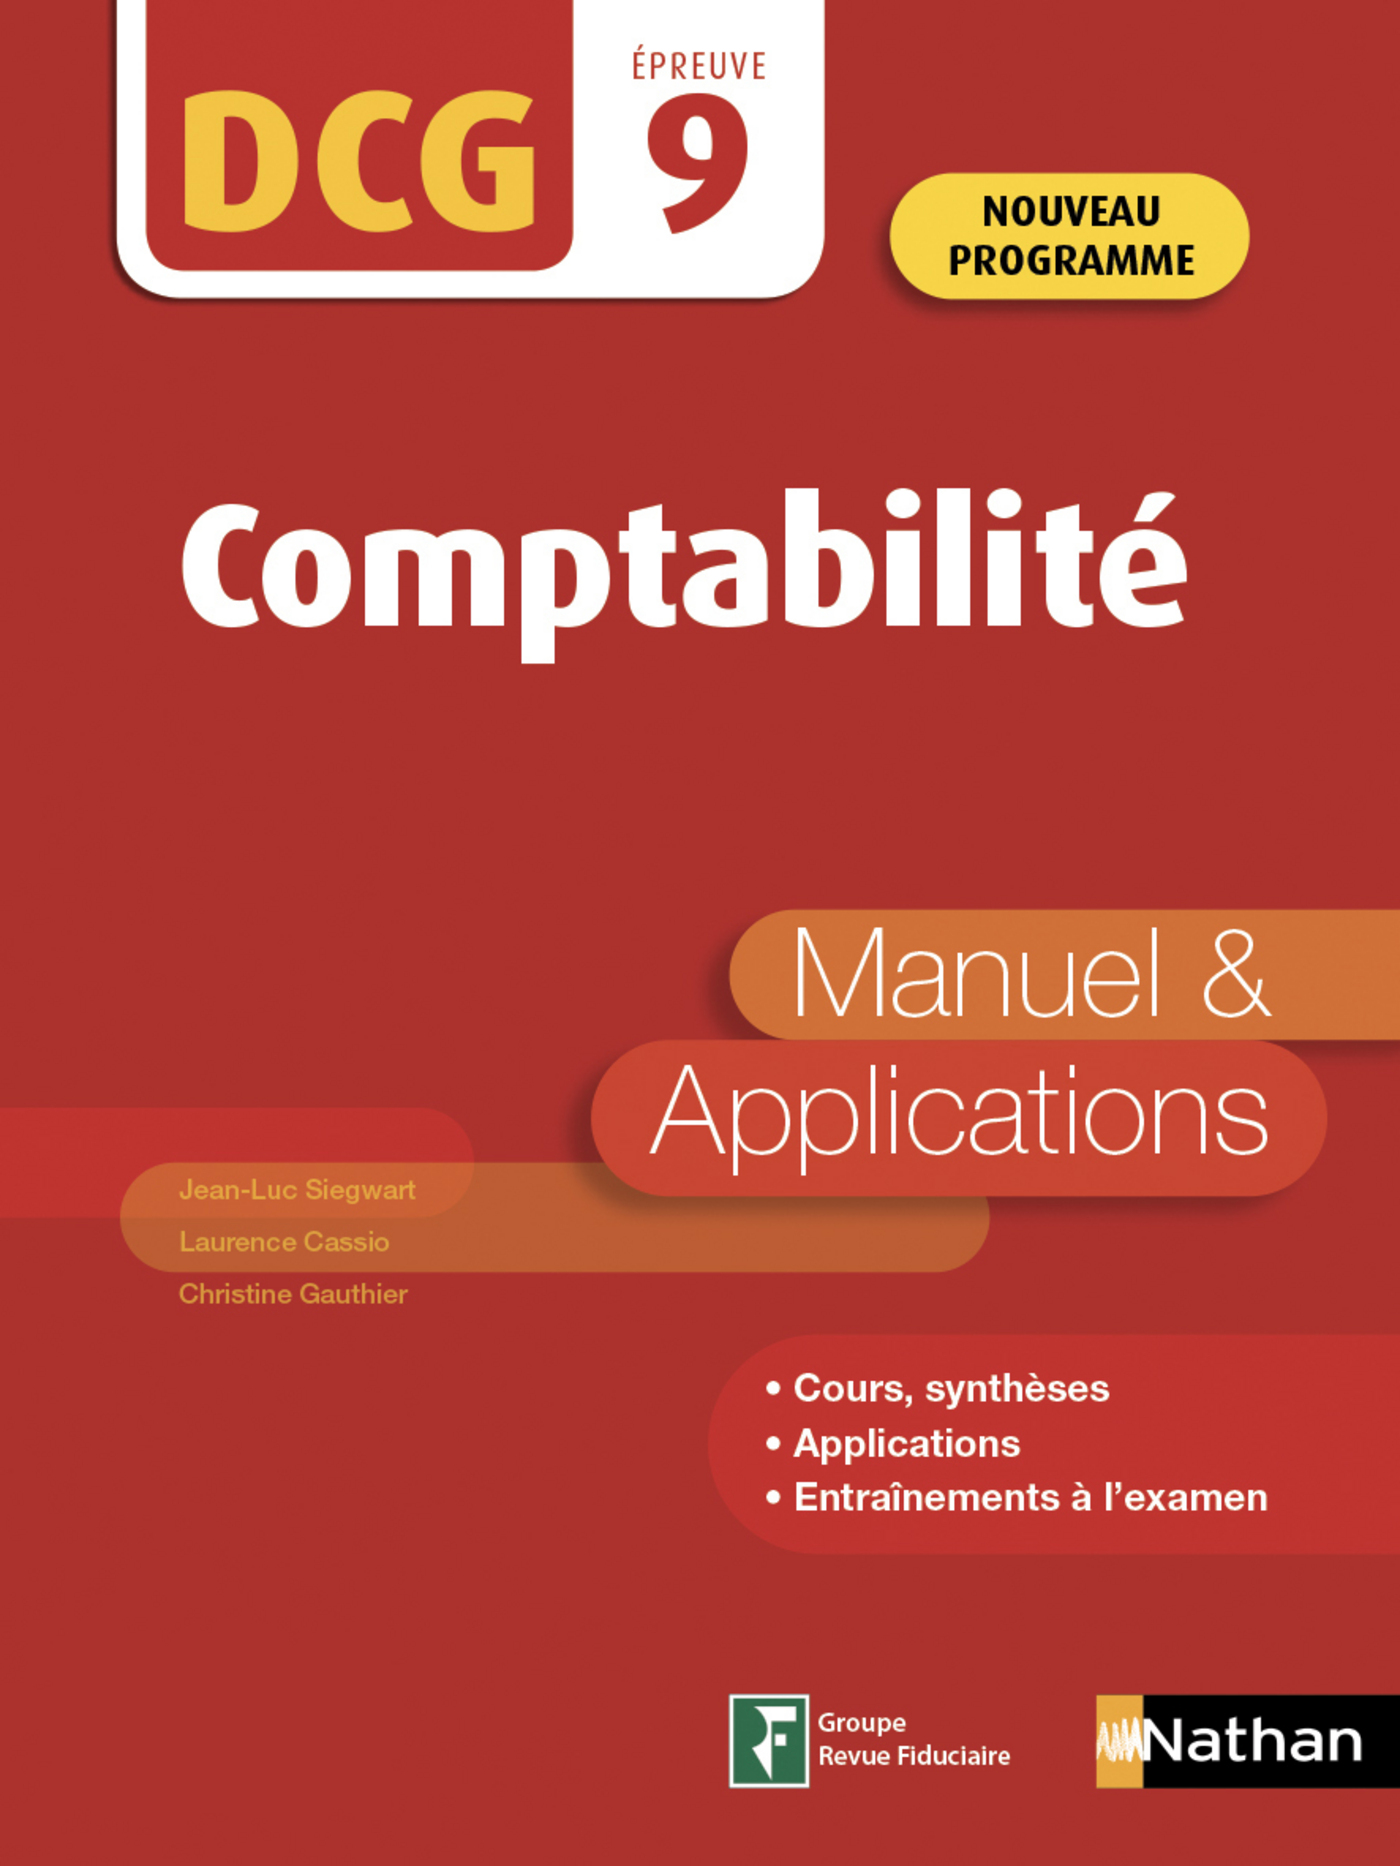 Introduction à la comptabilité - DCG Epreuve 9 - Manuel et applications (Epub 3 RF) - 2019